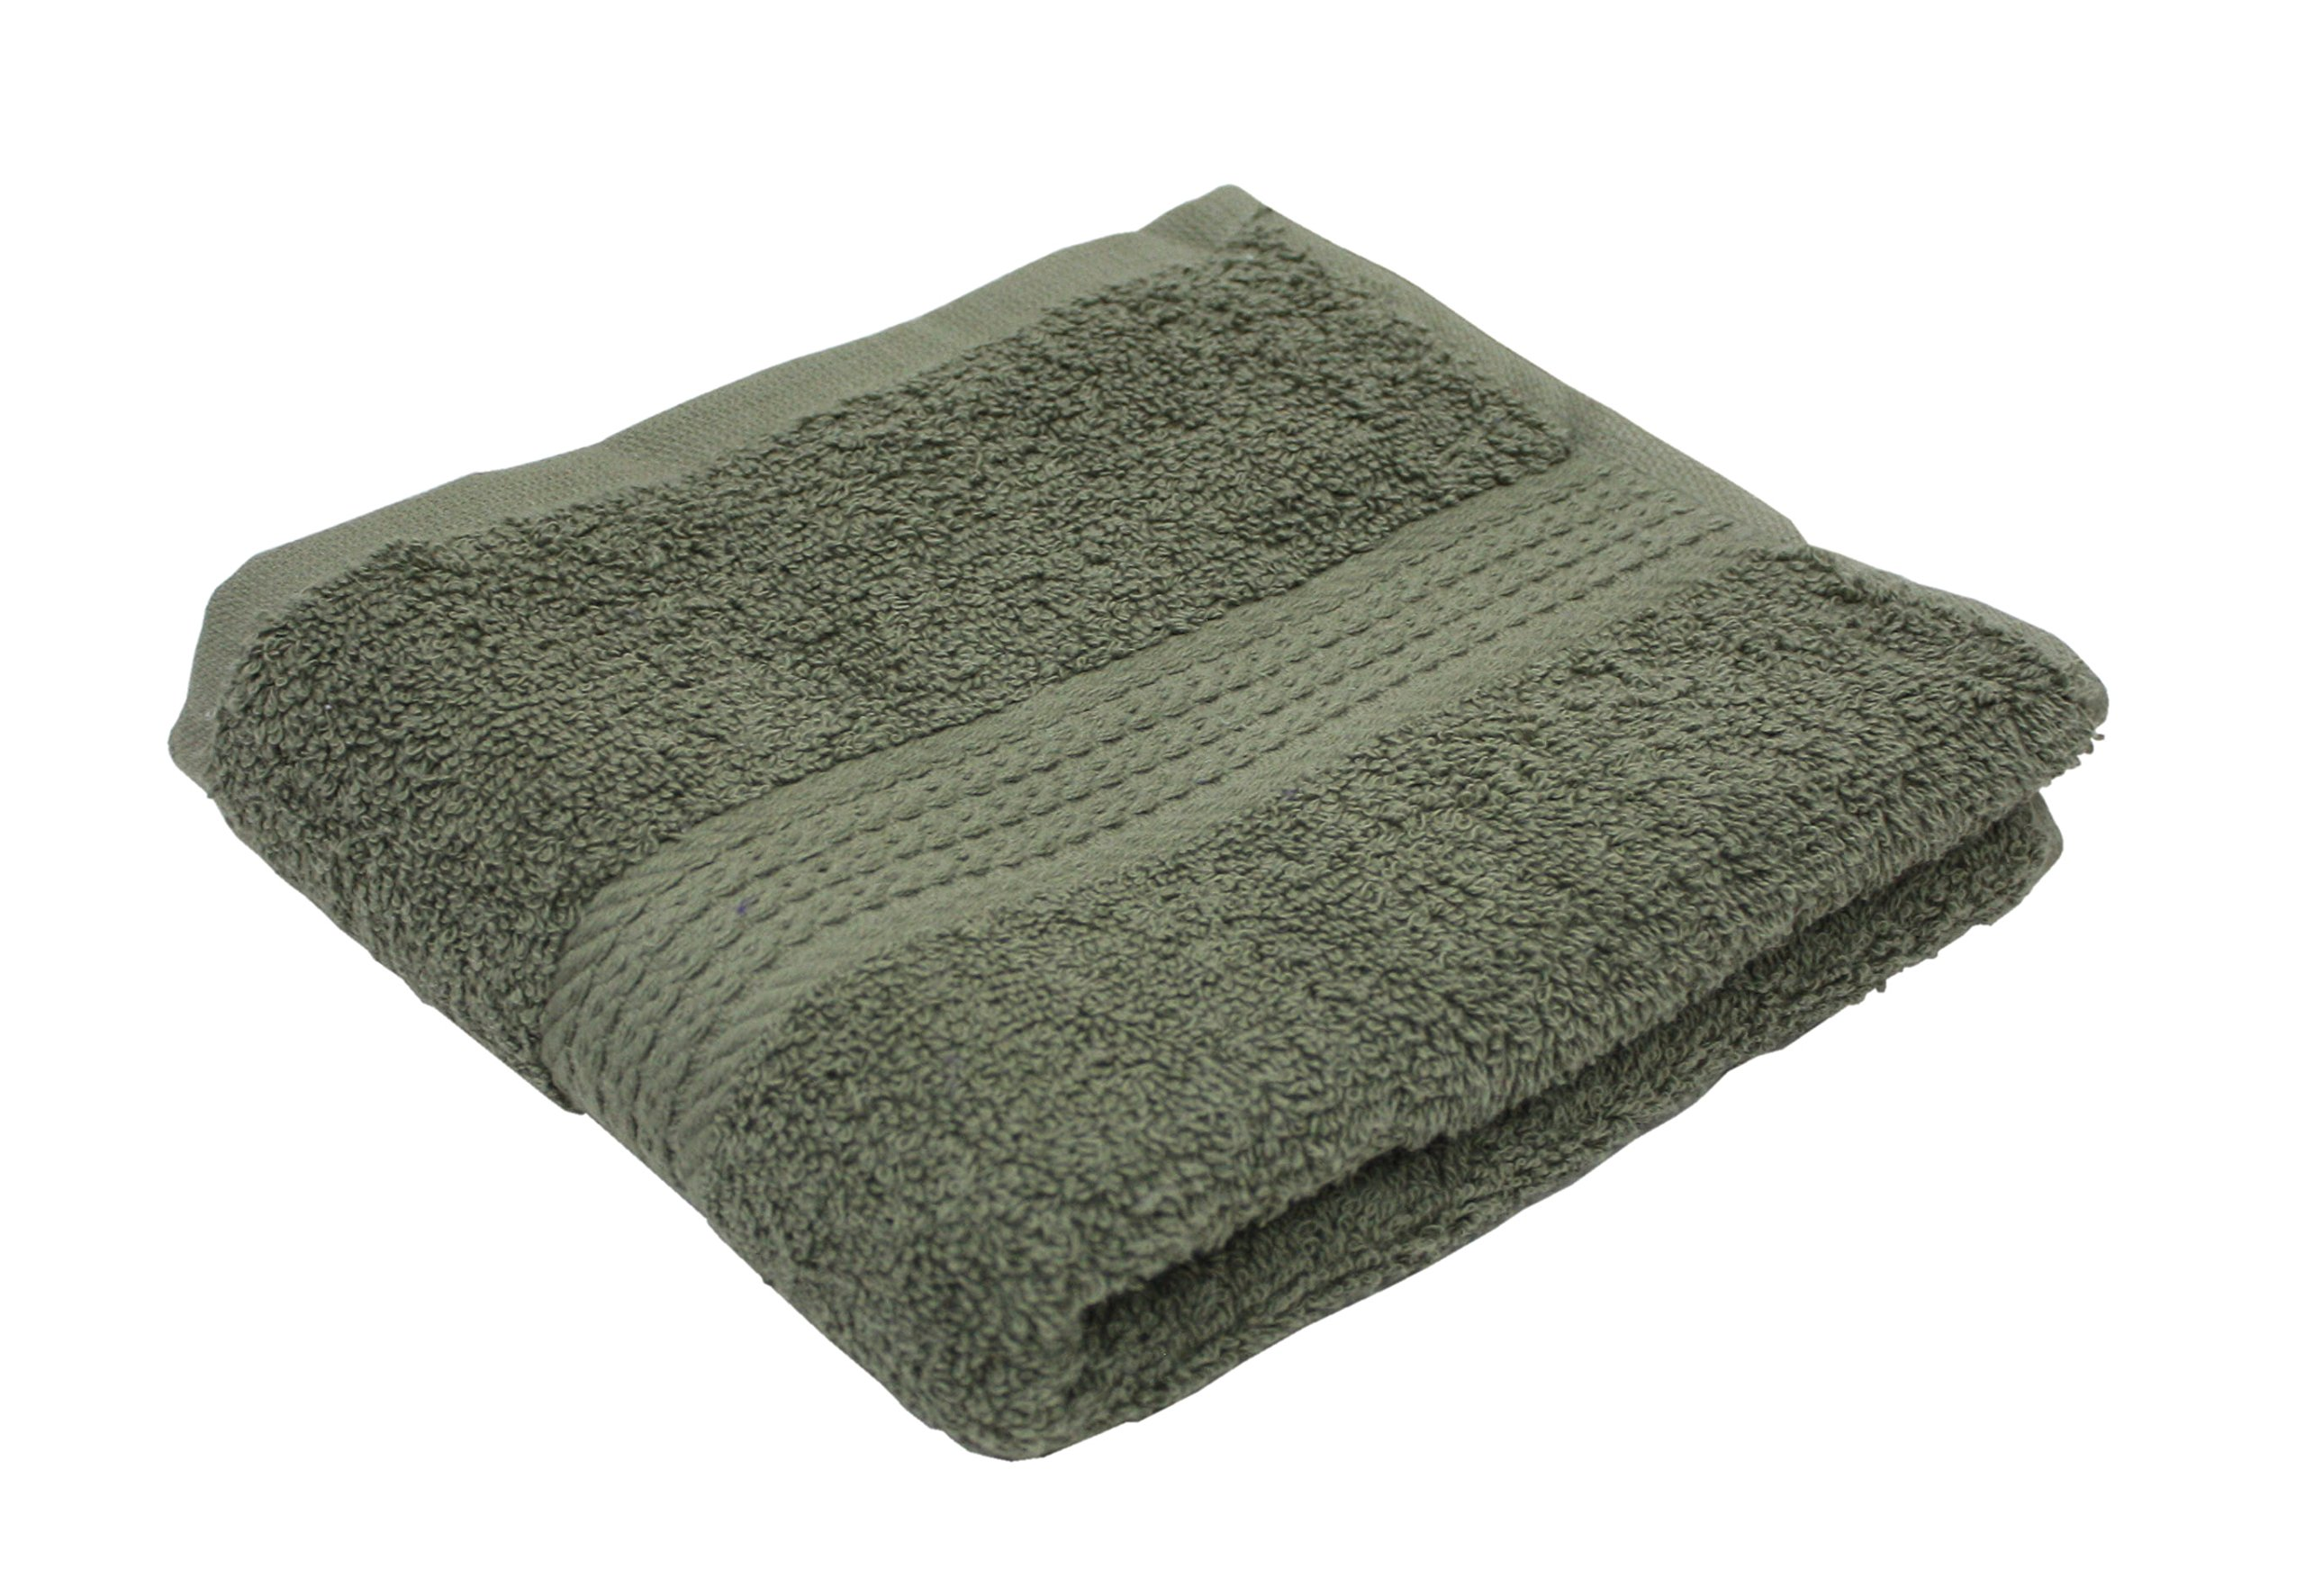 Premium 72-Piece Bulk Pack Cotton Hand Towel Set, 16x27, Hotel & Spa Quality, Super Soft and Ultra Absorbent for Commercial Business-Olive Green